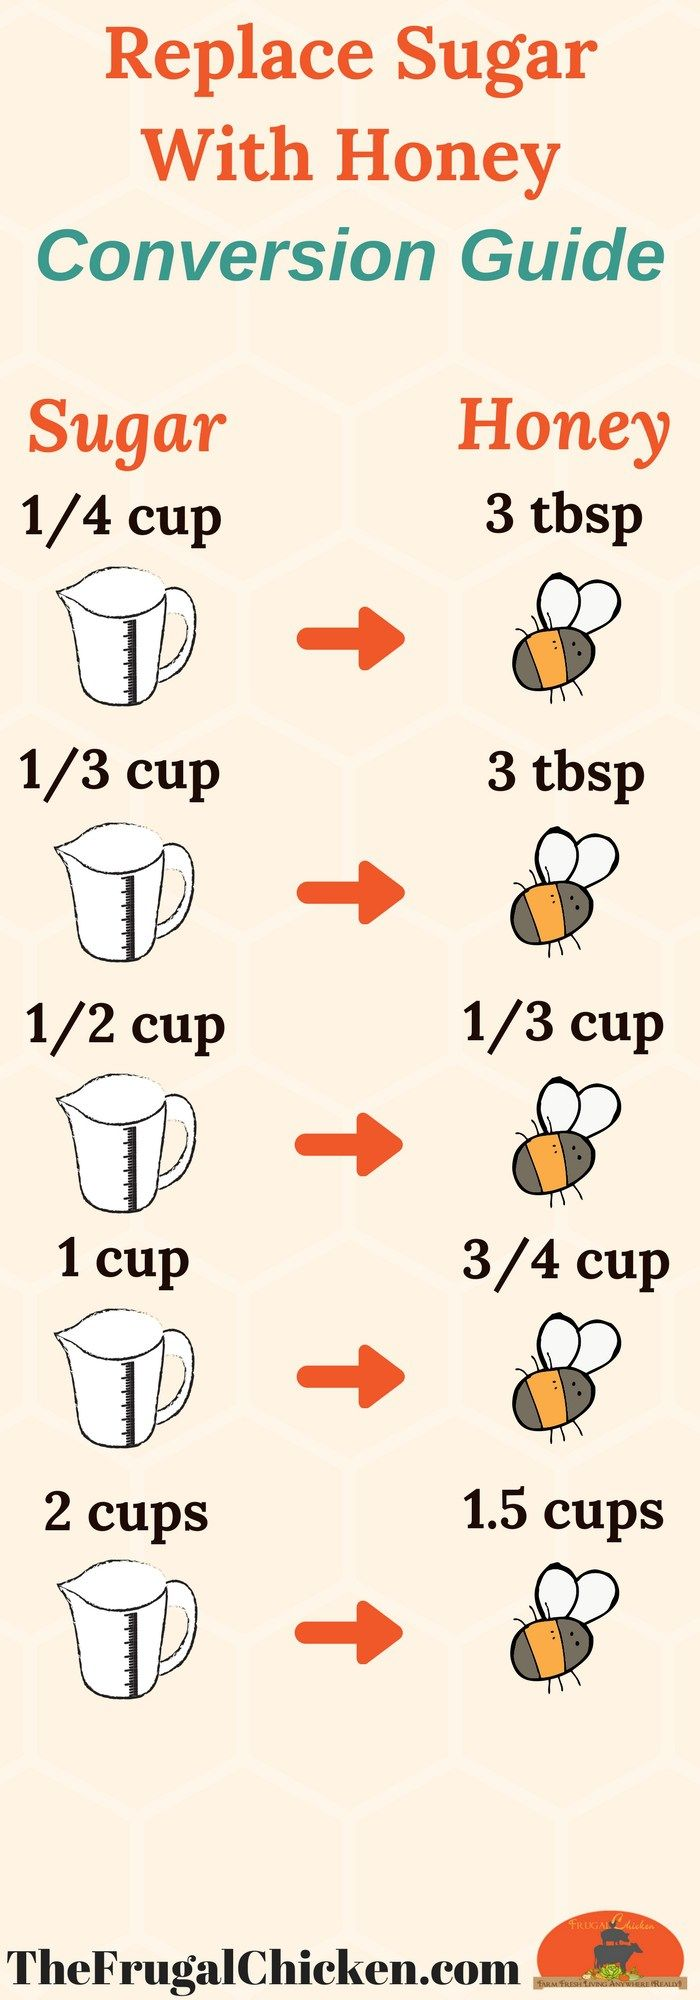 This is a good guide for replacing sugar with honey.